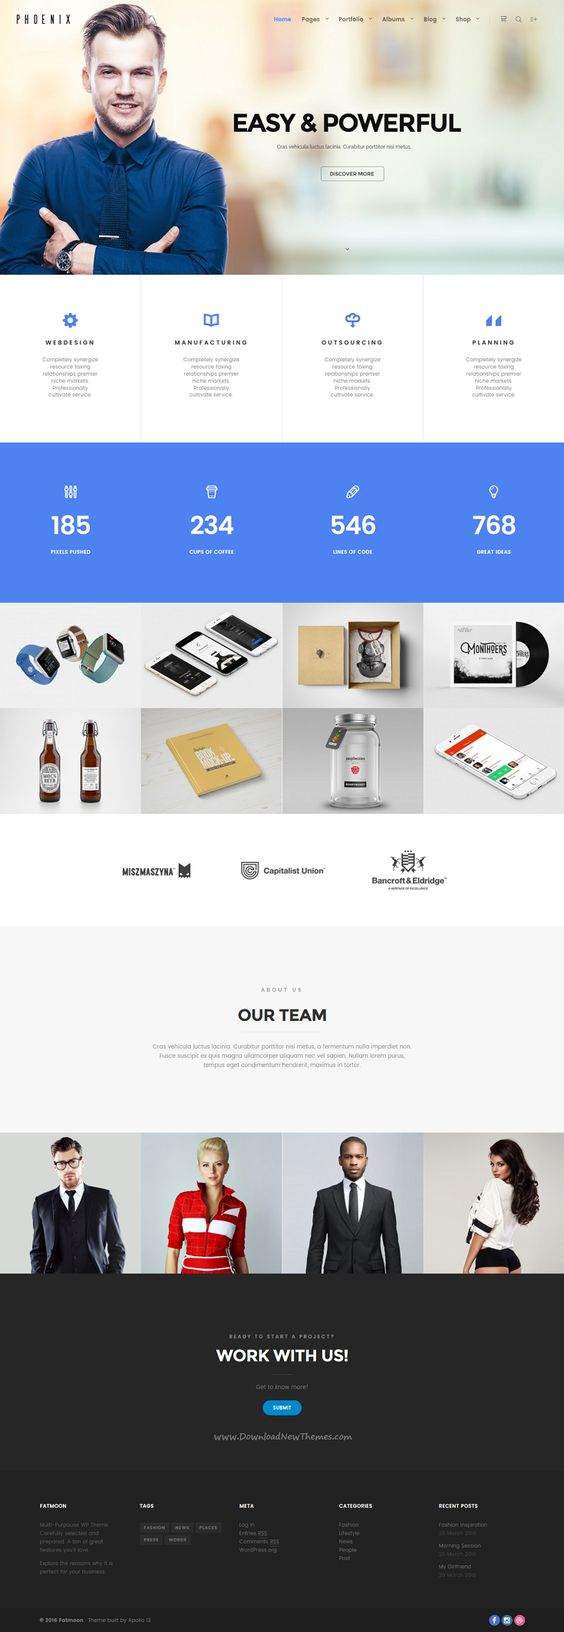 FatMoon is Creative WordPress Theme for multipurpose photography website with 41+ unique homepages demos. Download Now➝ https://themeforest.net/item/fatmoon-creative-photography-multipurpose-theme/15966469?ref=Datasata